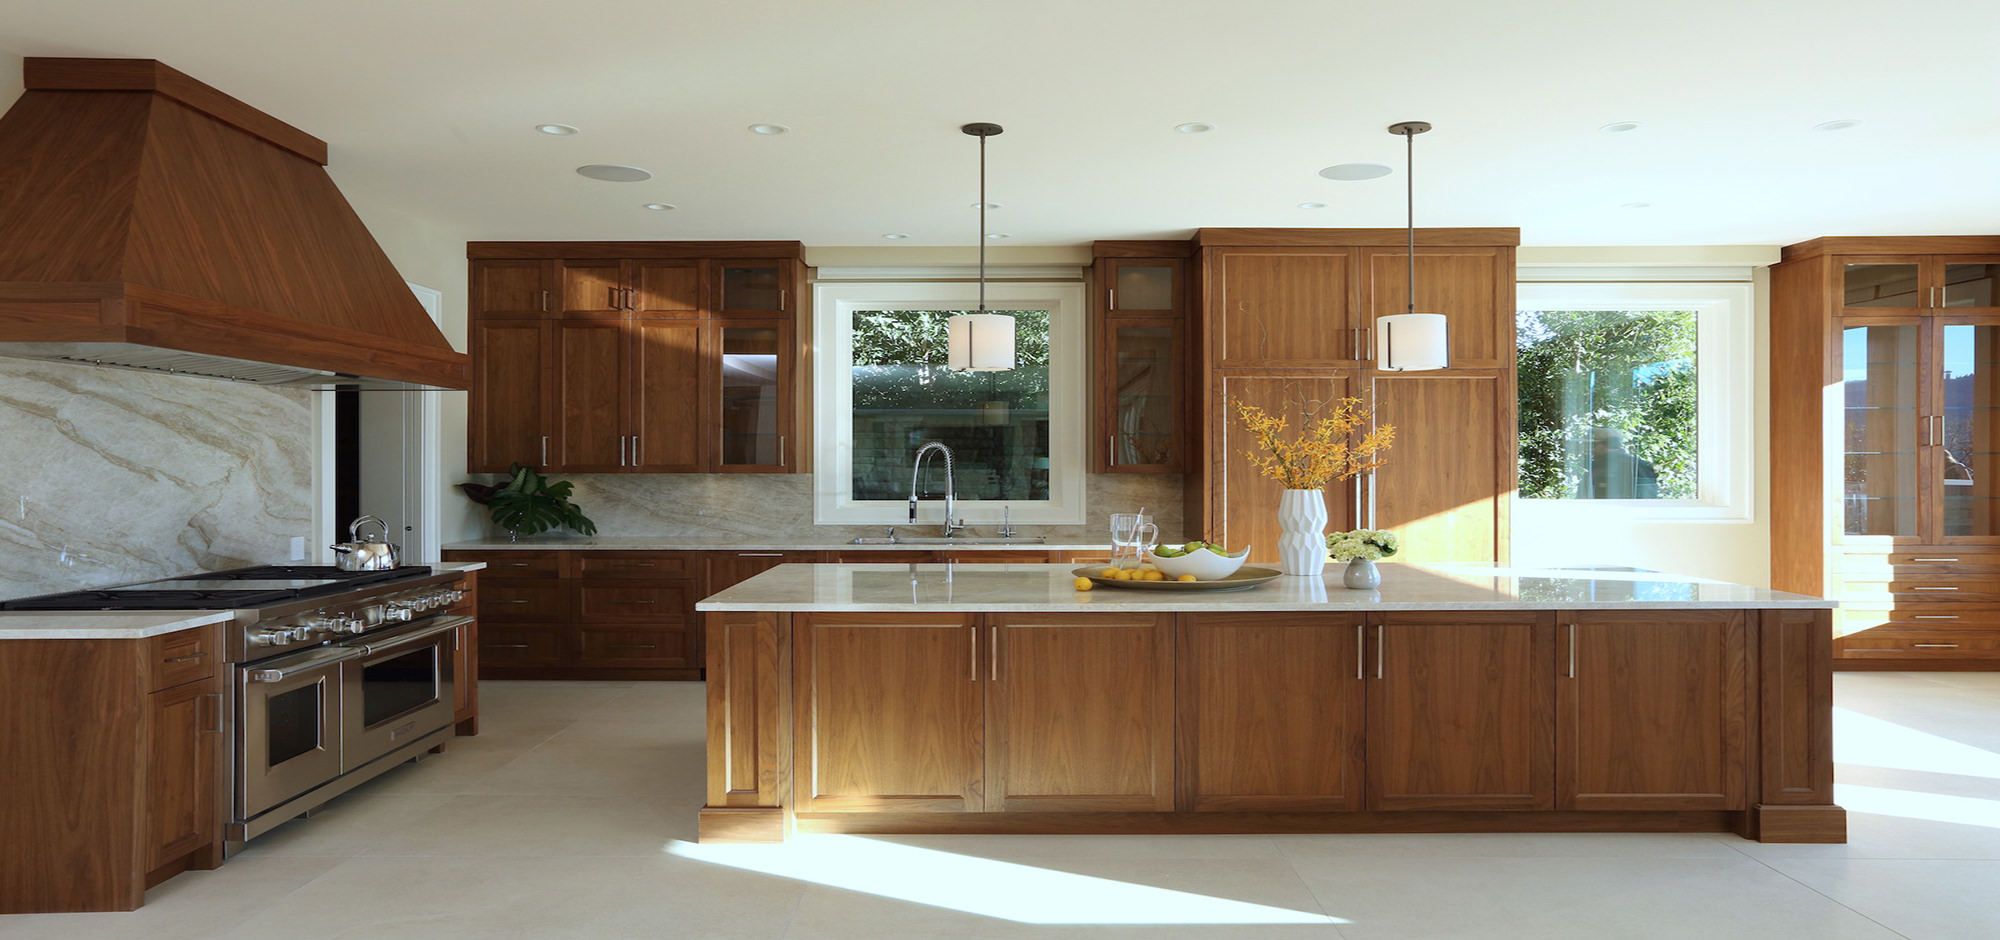 Modern kitchen with wood-designed cabinetry and white marble countertops